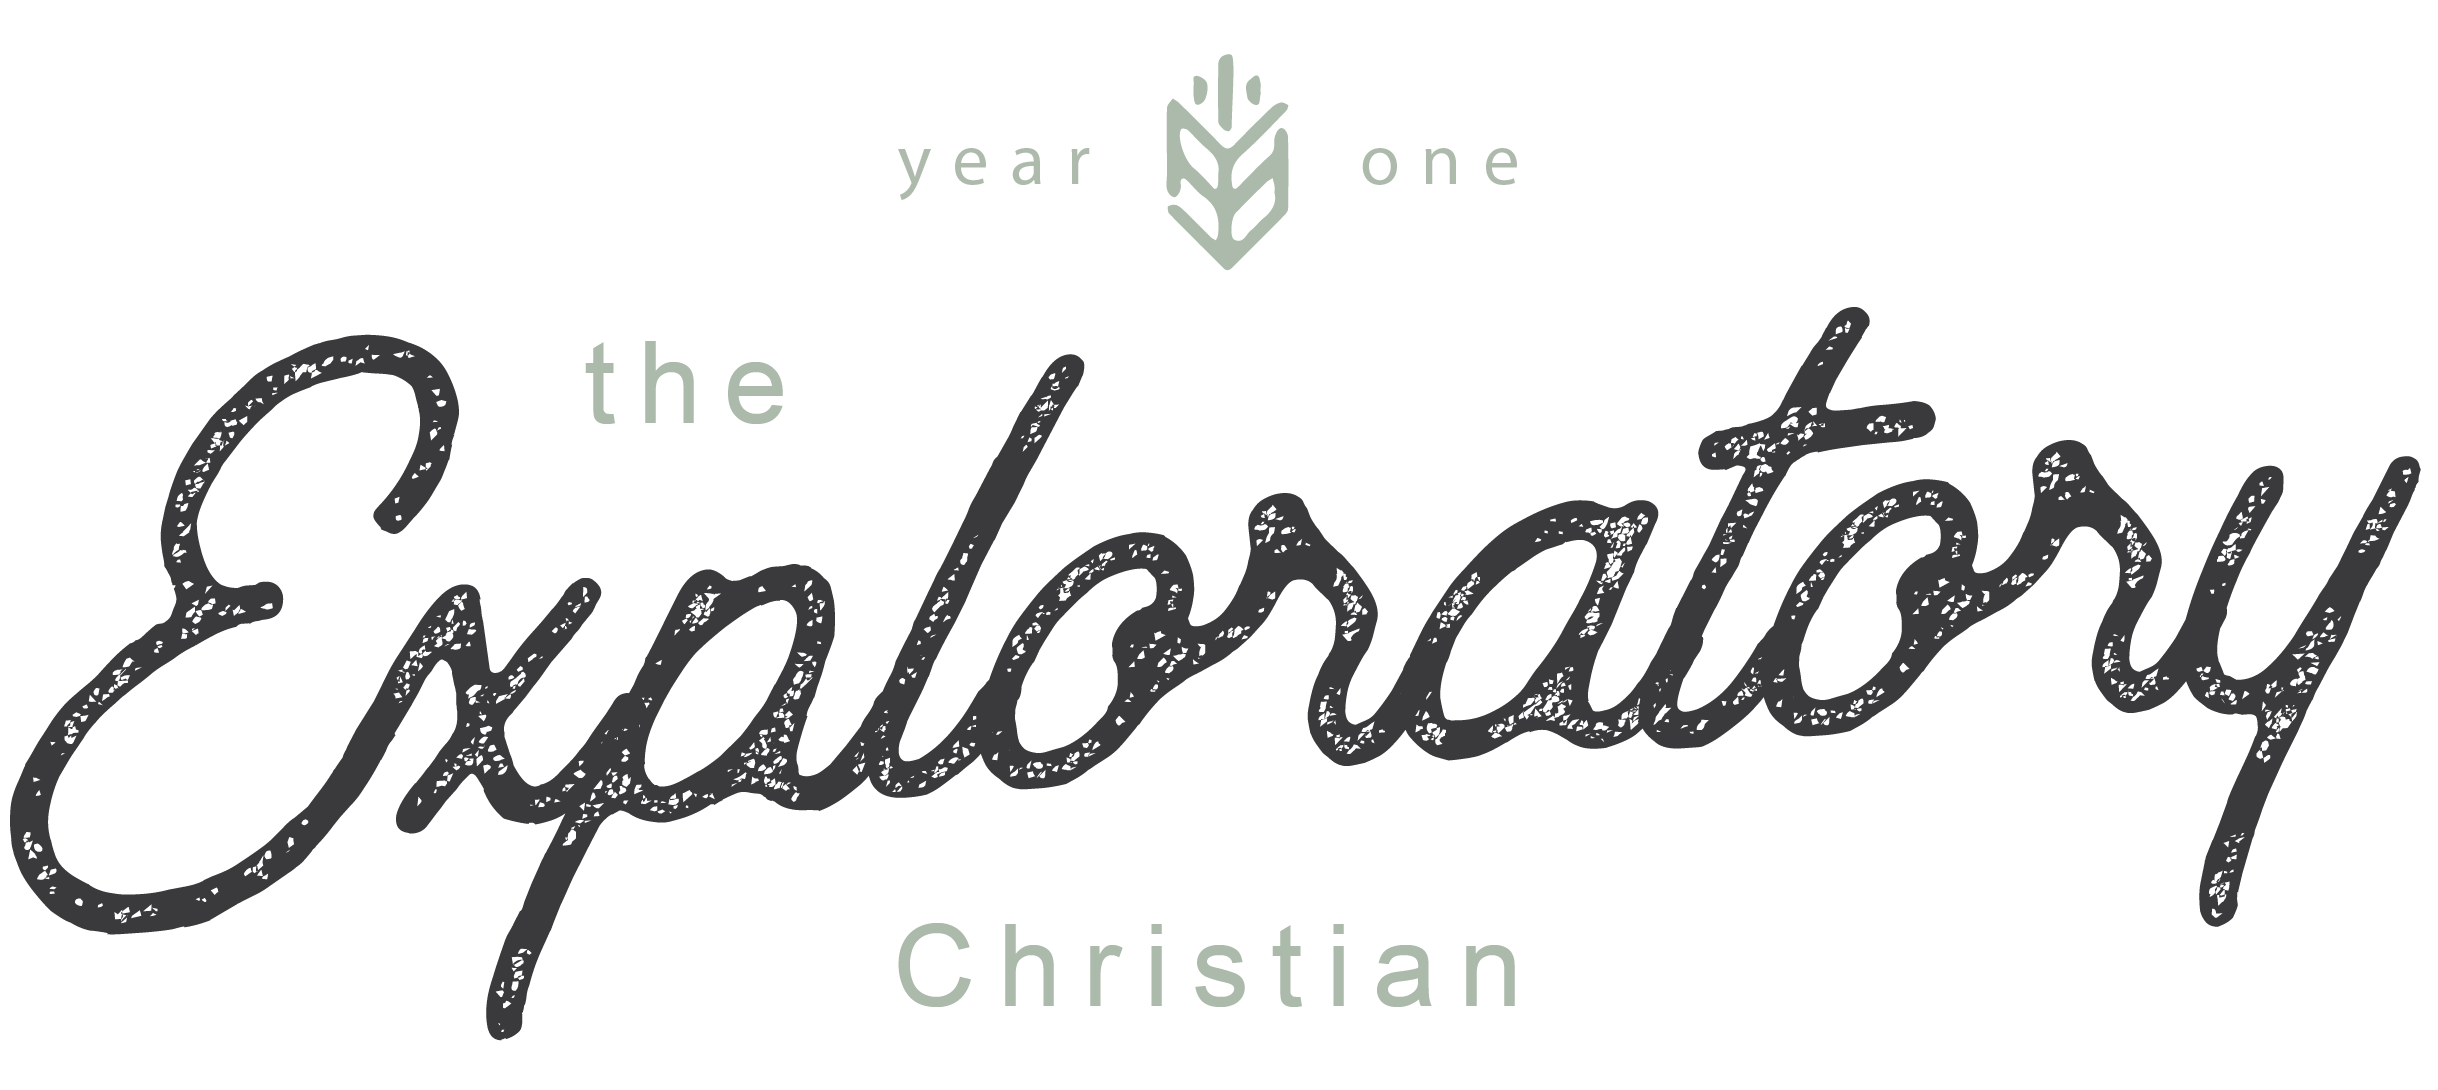 TheExploratoryChristianLogo.png